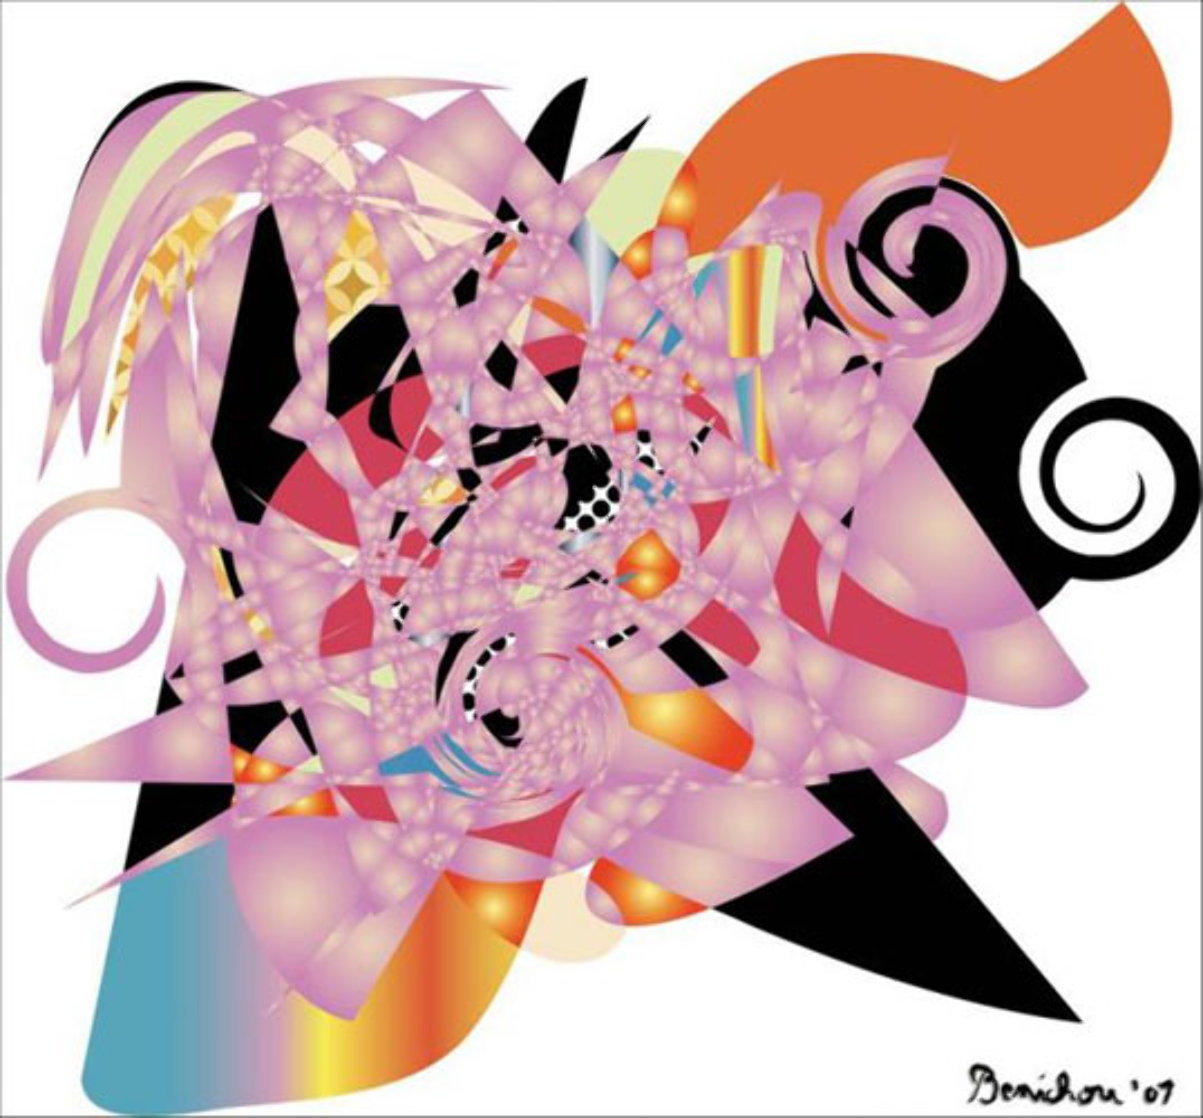 When Fun Was the Only Fashion 2011 32x35 Huge Limited Edition Print by Philippe Benichou